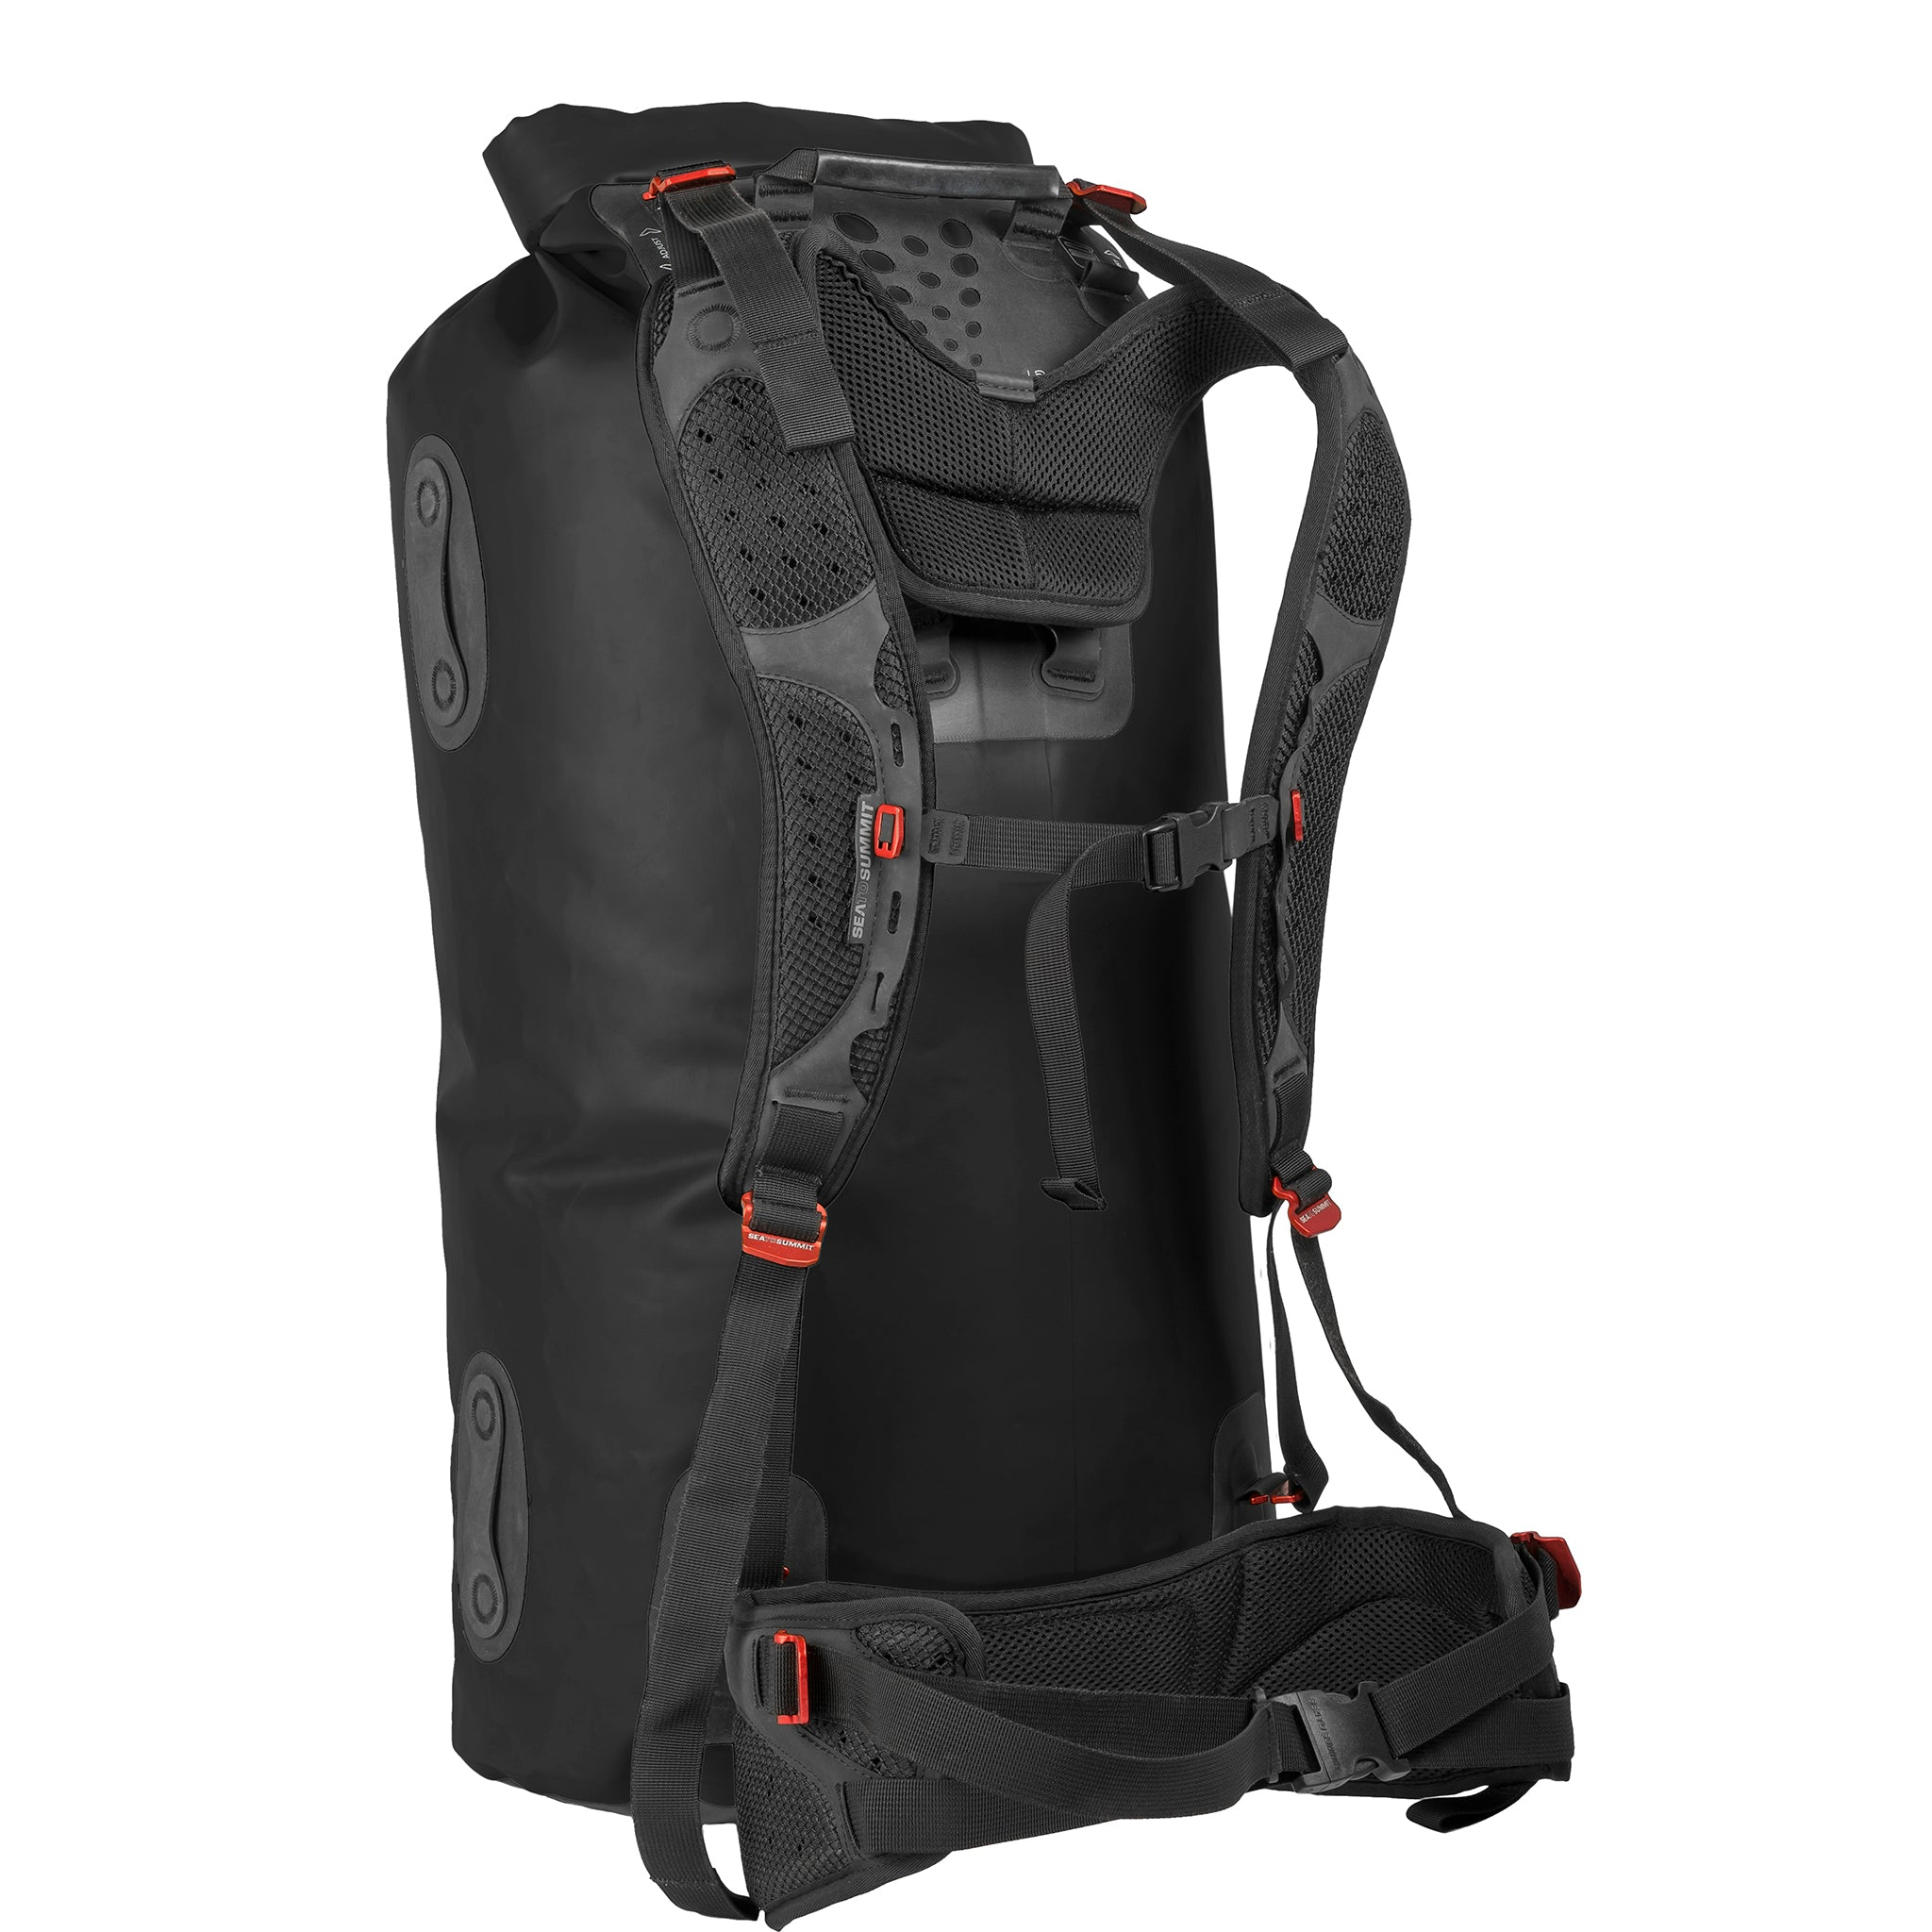 Hydraulic Dry Pack bag _ 120 liter _ black